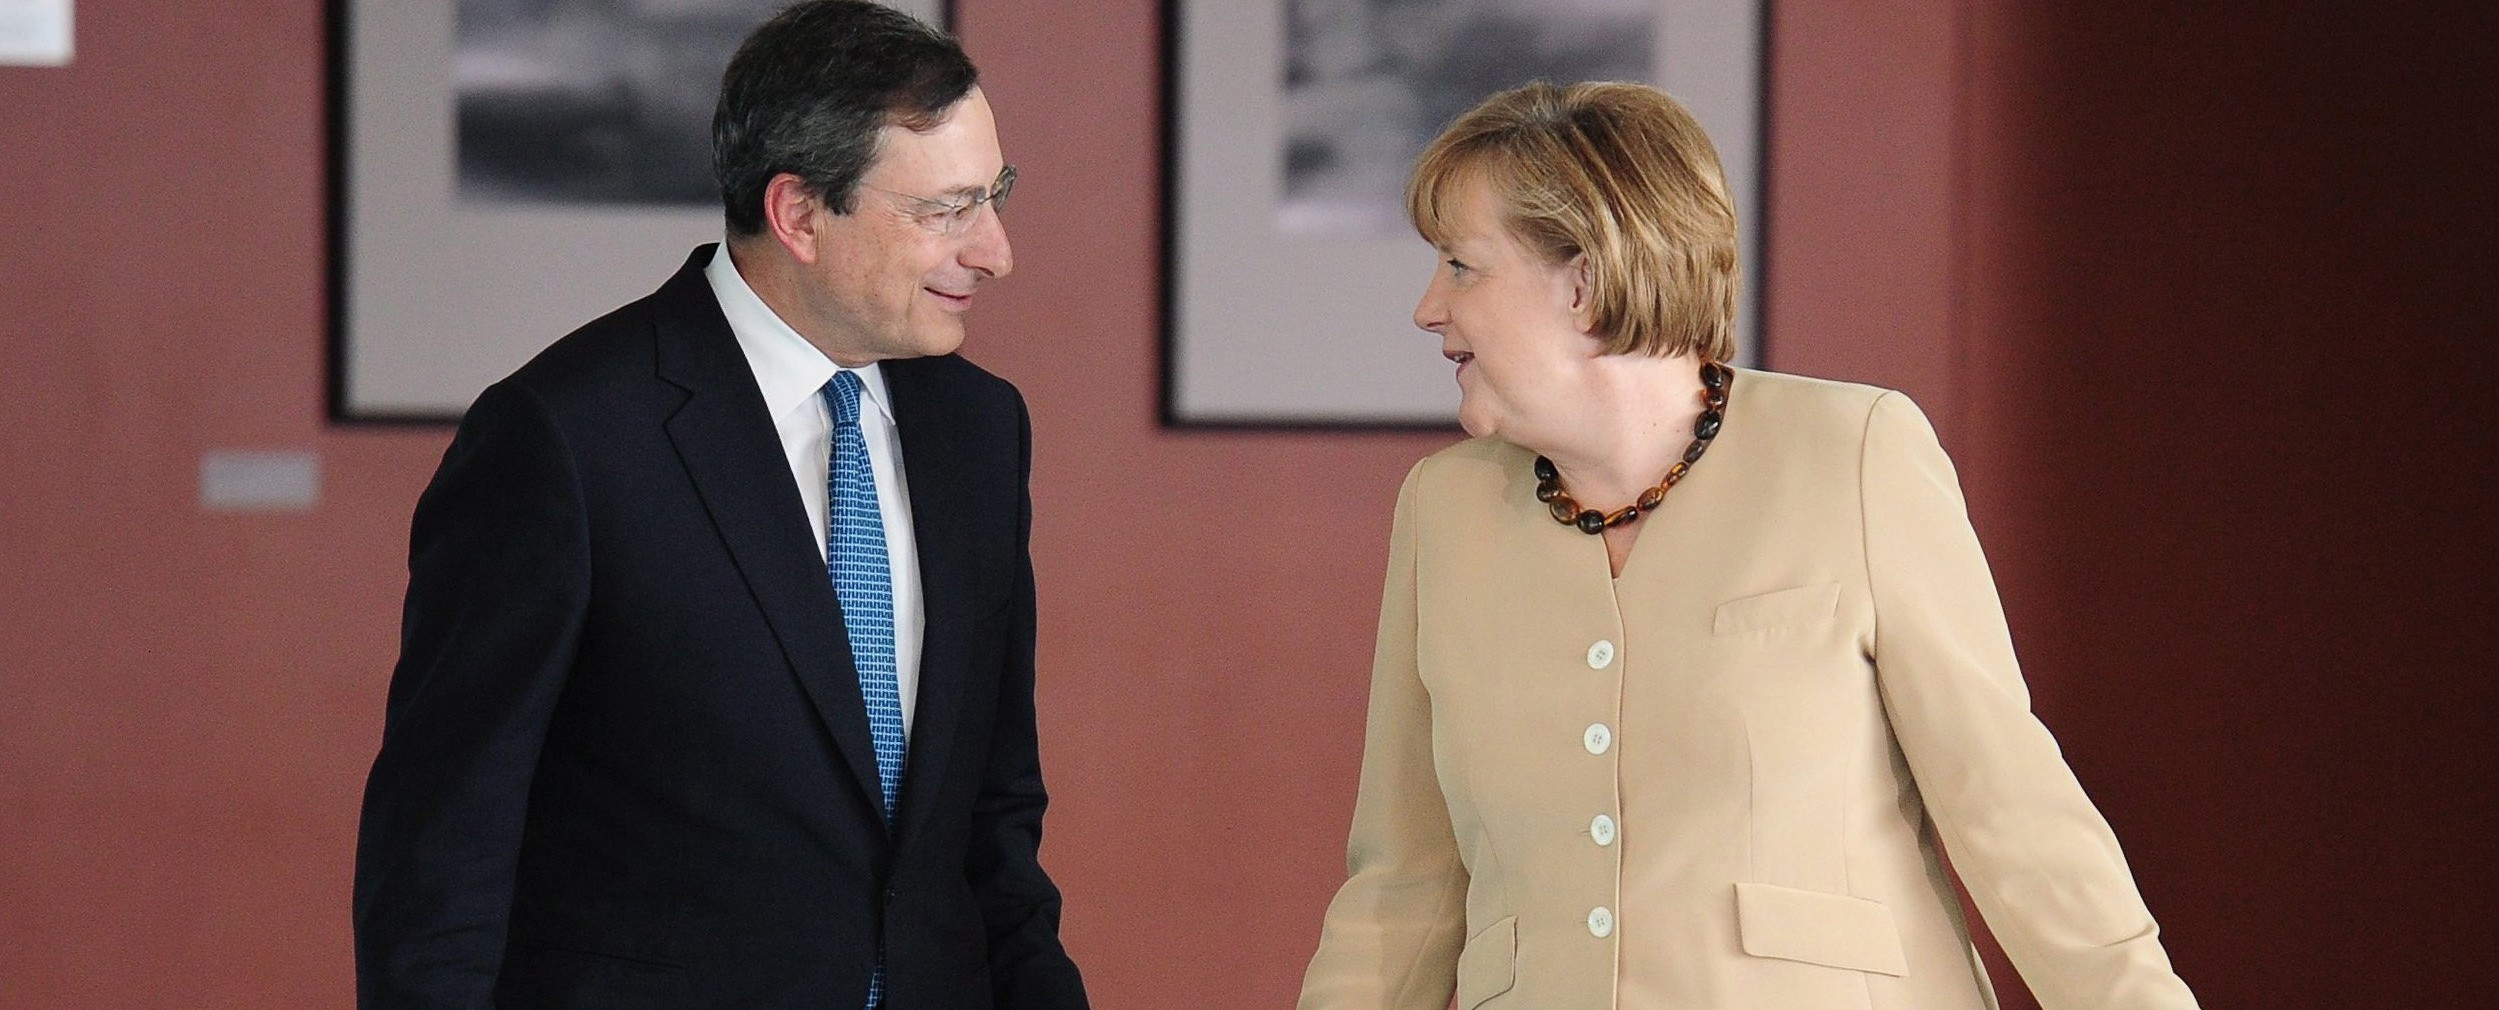 http://www.secoloditalia.it/files/2014/11/merkel-con-mario-draghi-e1416216911793.jpg